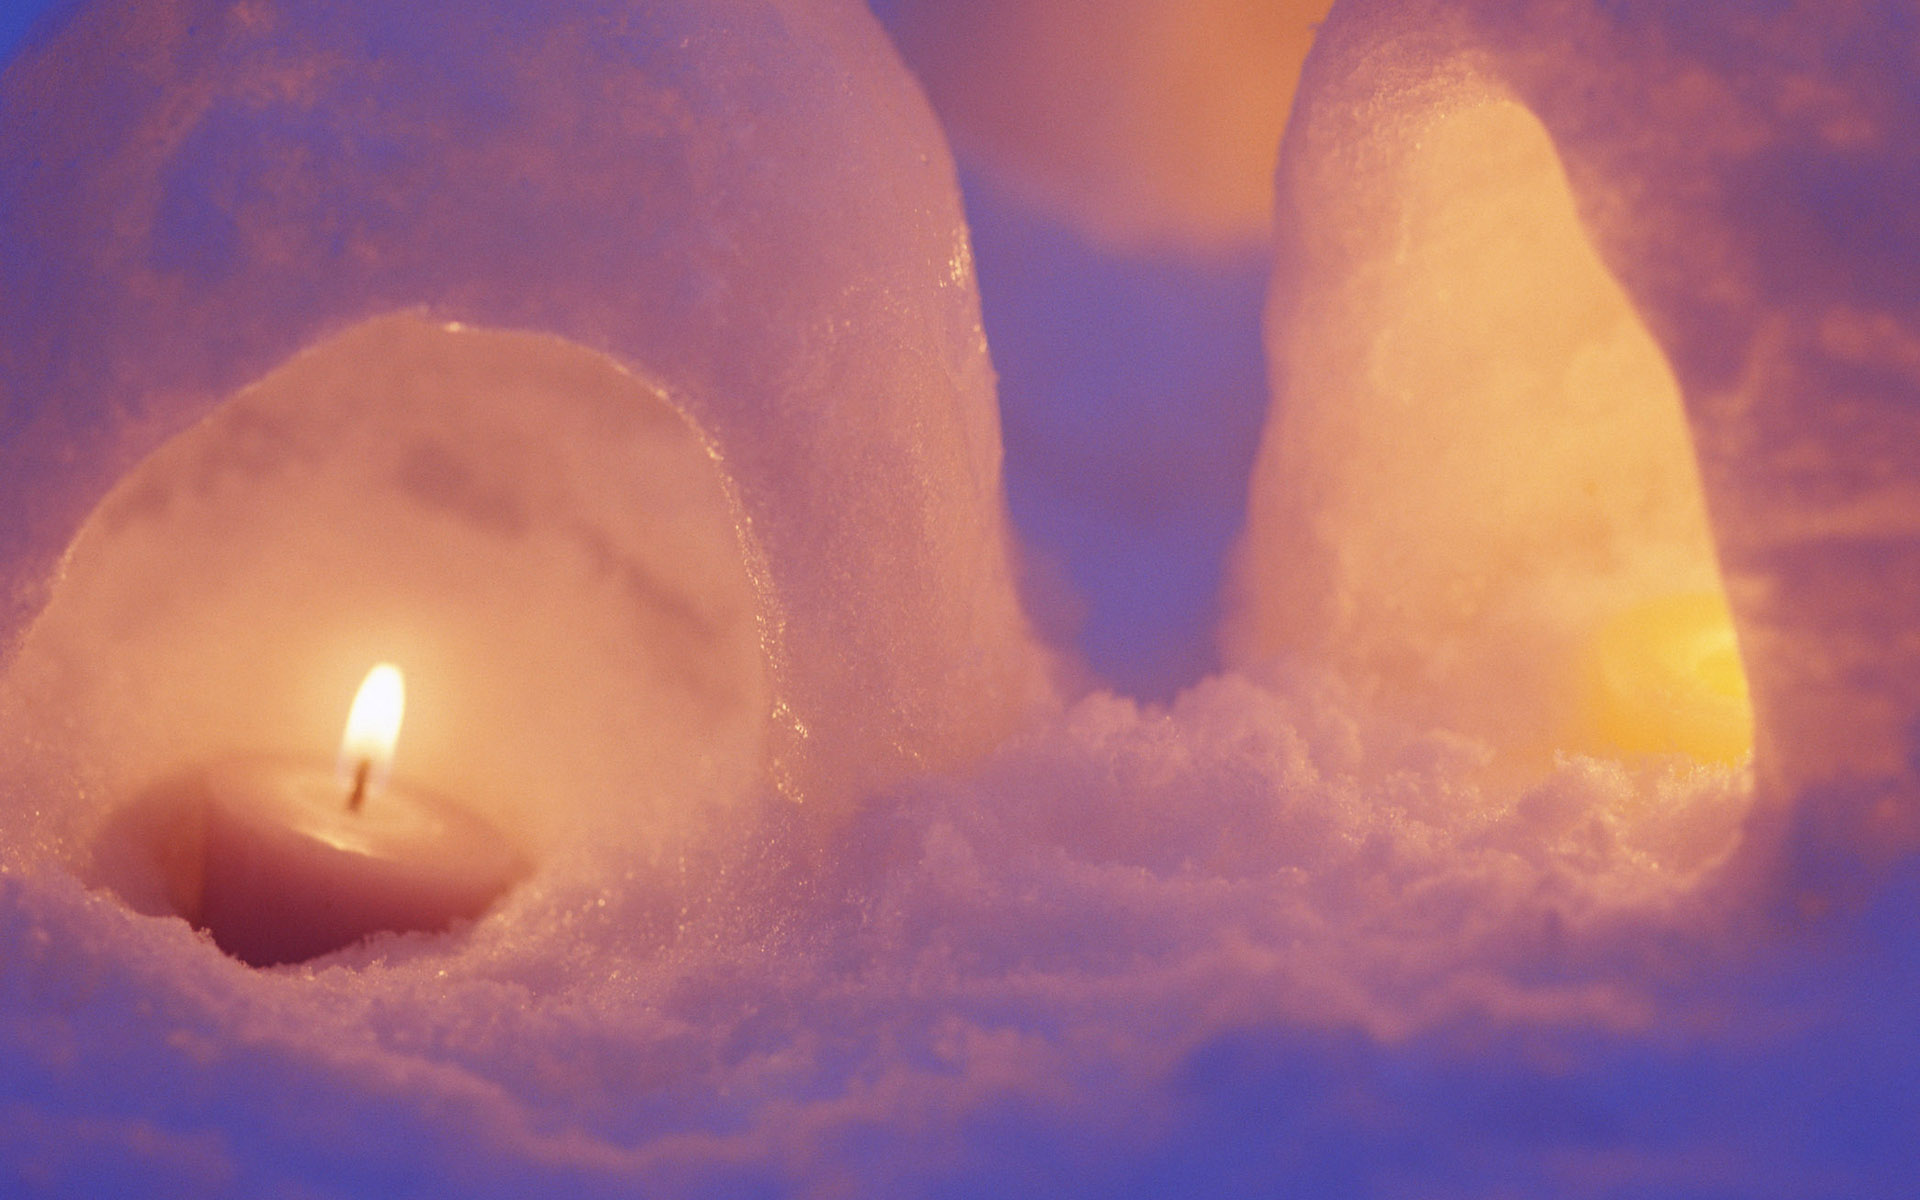 Candle wallpaper 13341